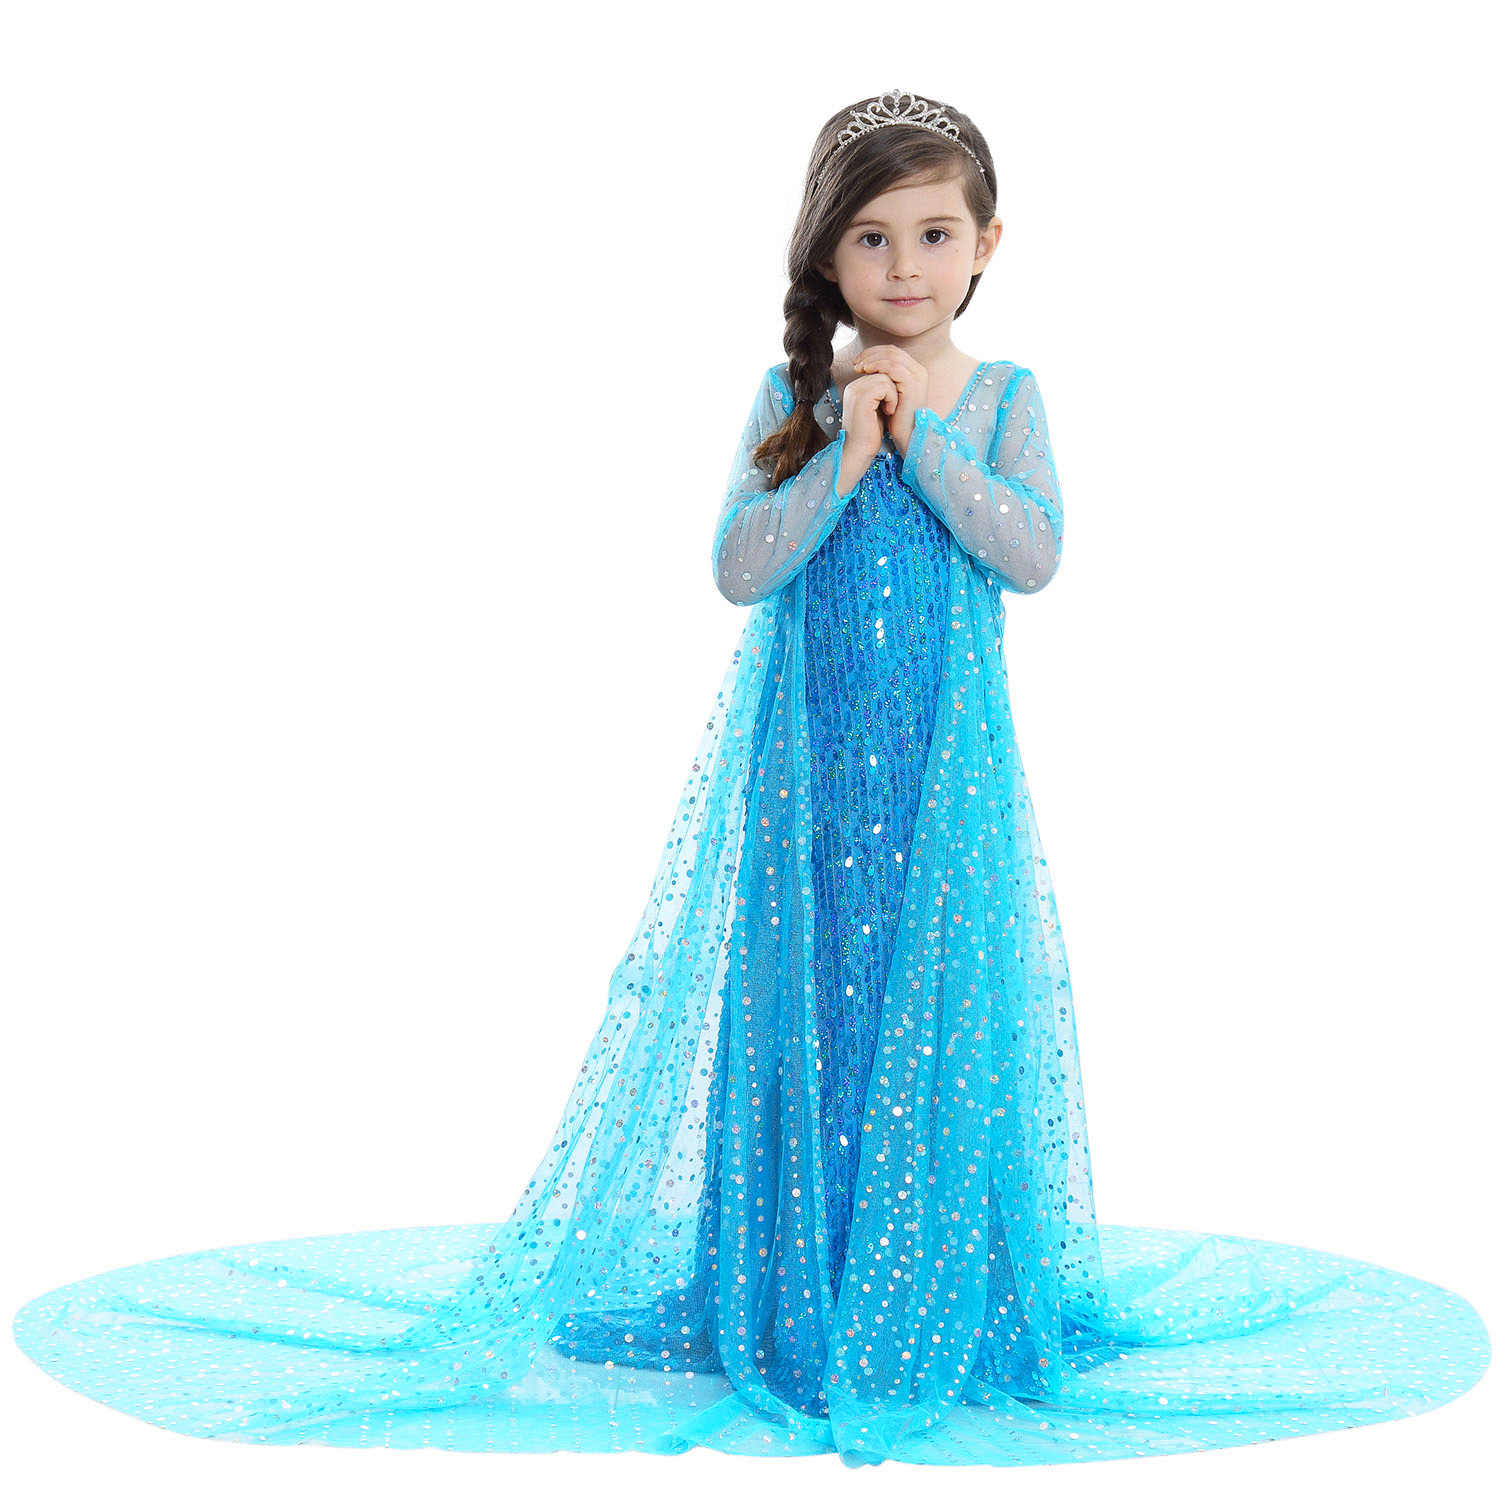 Halloween Costumes For Kids Cartoon Characters Children Parties Outfits Promotion High Quality Girls Princess Anna Elsa Costume Elsa Costume Anna Elsa Costumecostume For Kids Aliexpress